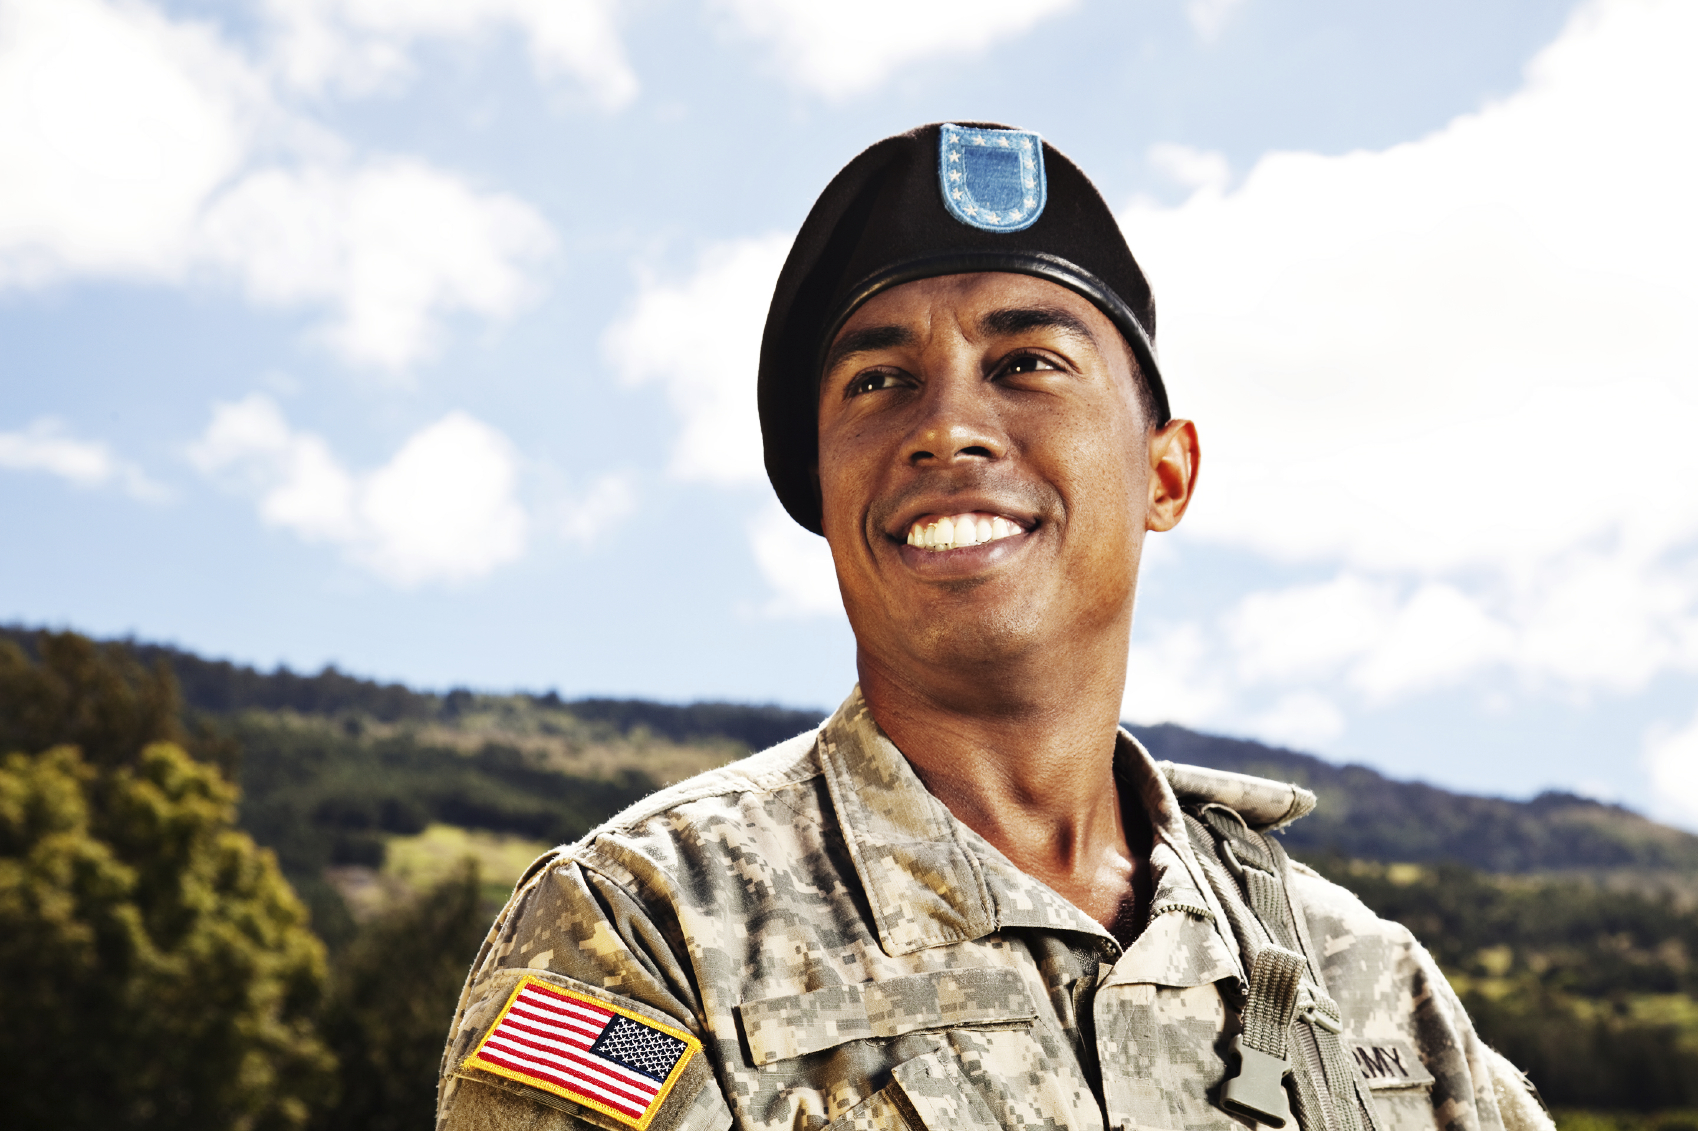 image of military serviceman